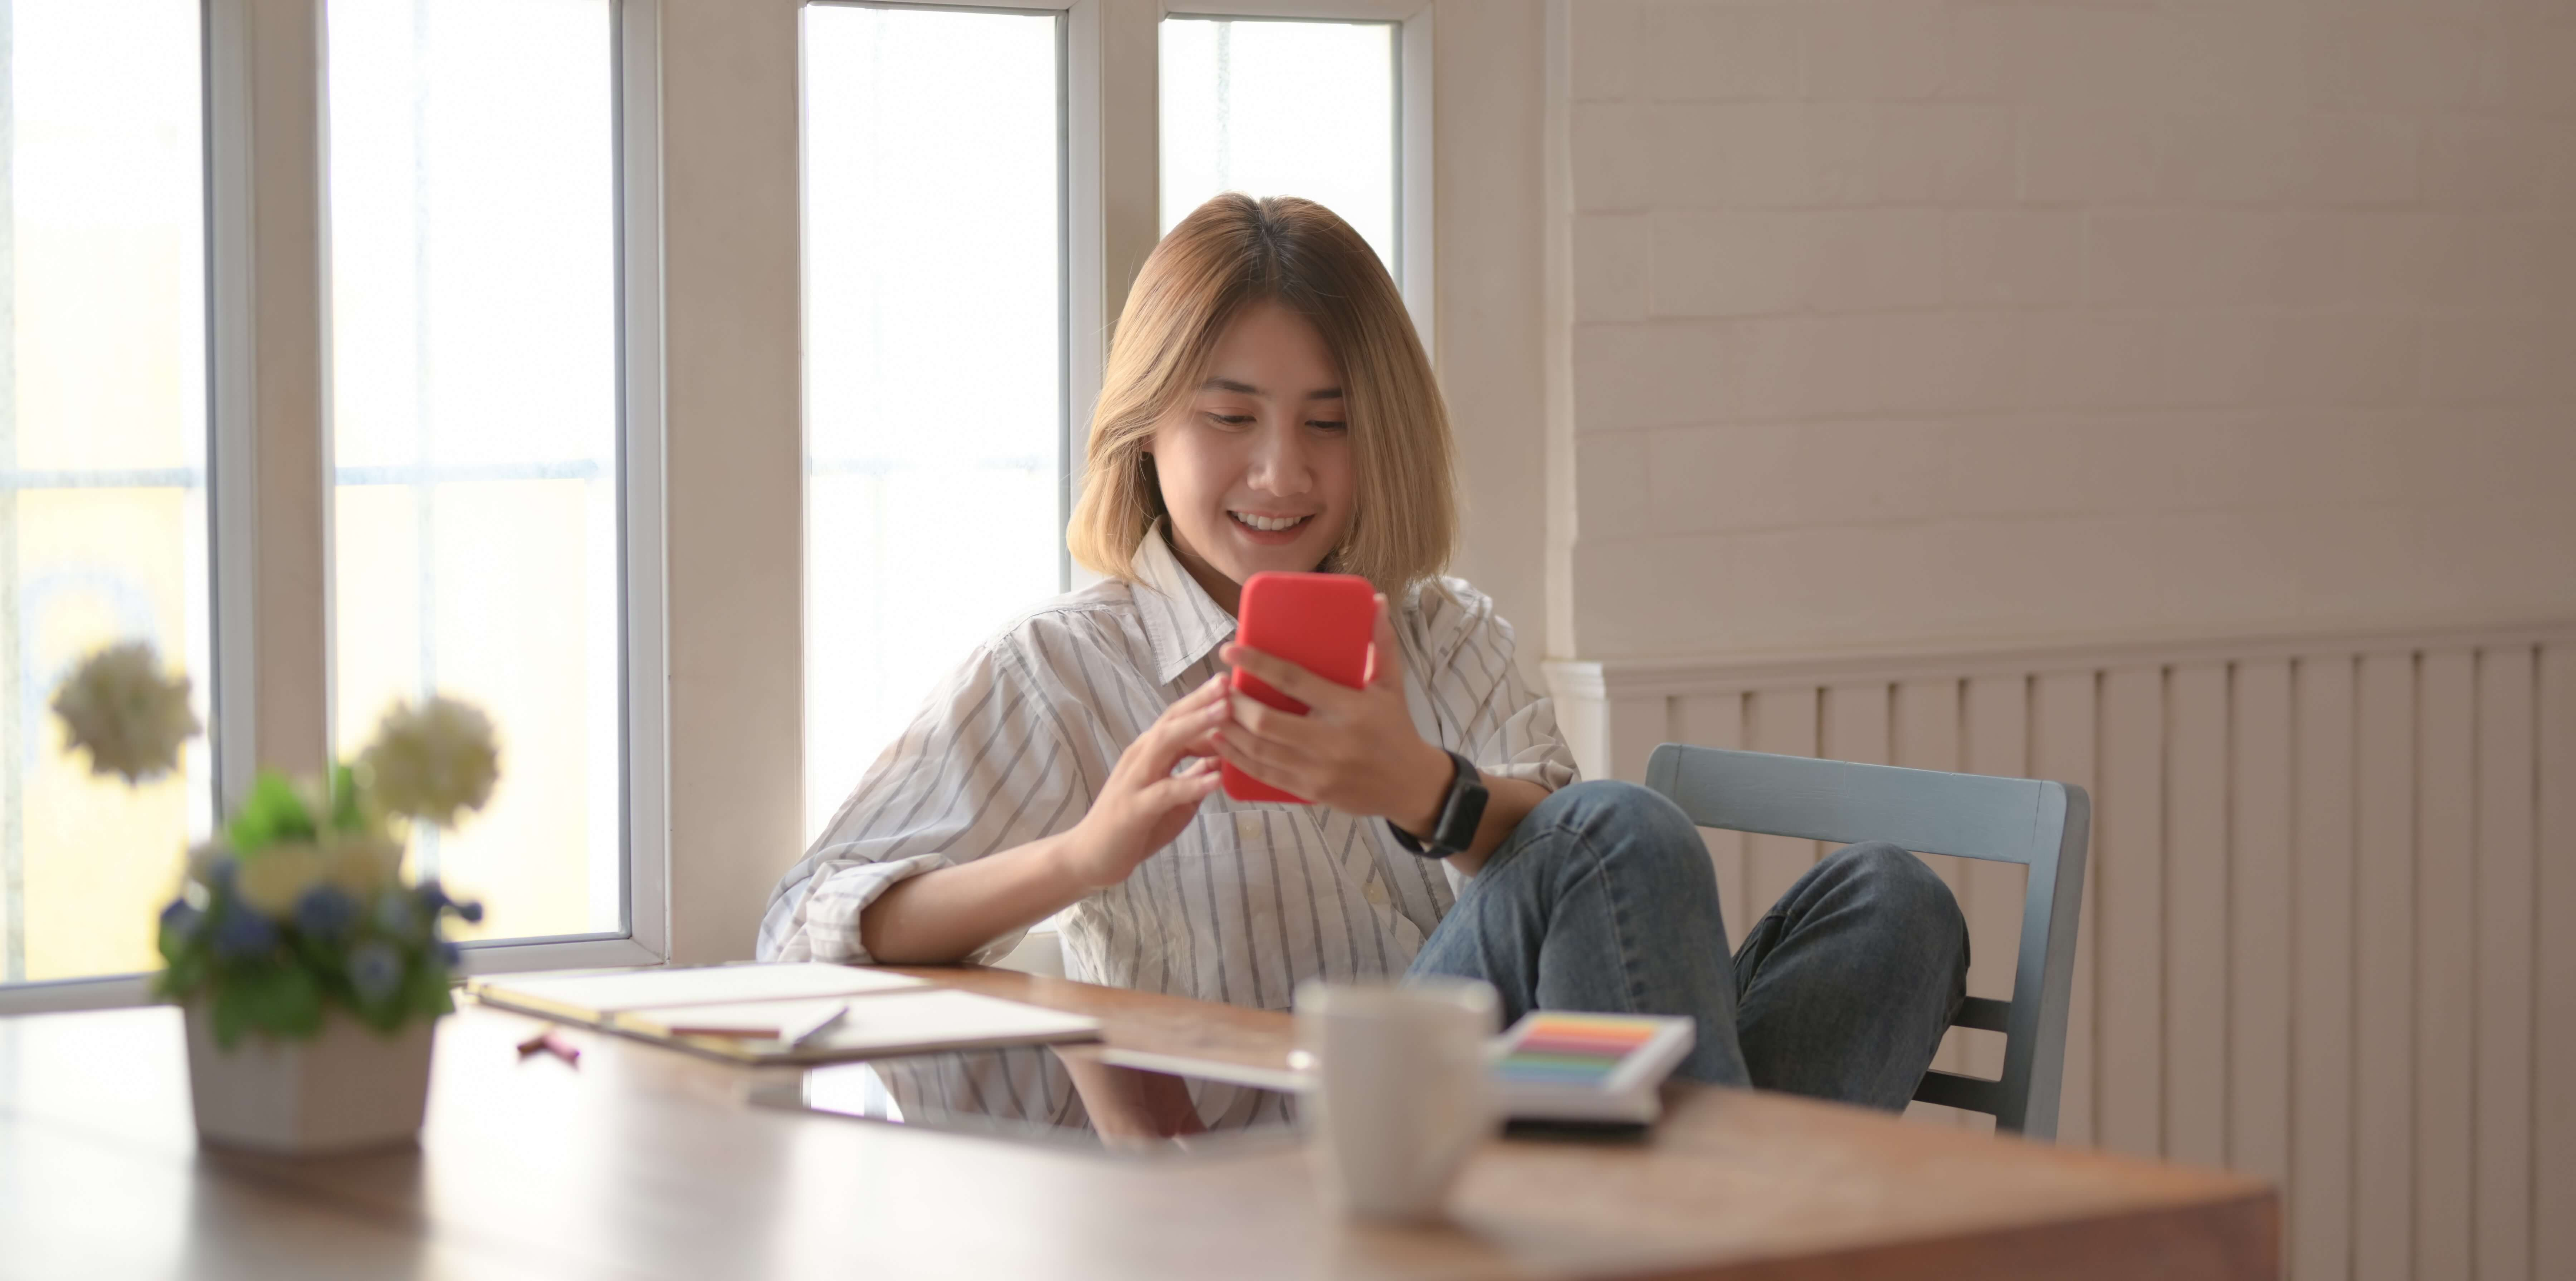 Photograph of young woman playing games on her mobile phone. KangaZoo is a mobile simulation game developed by PentaQuest and Chaos Theory.